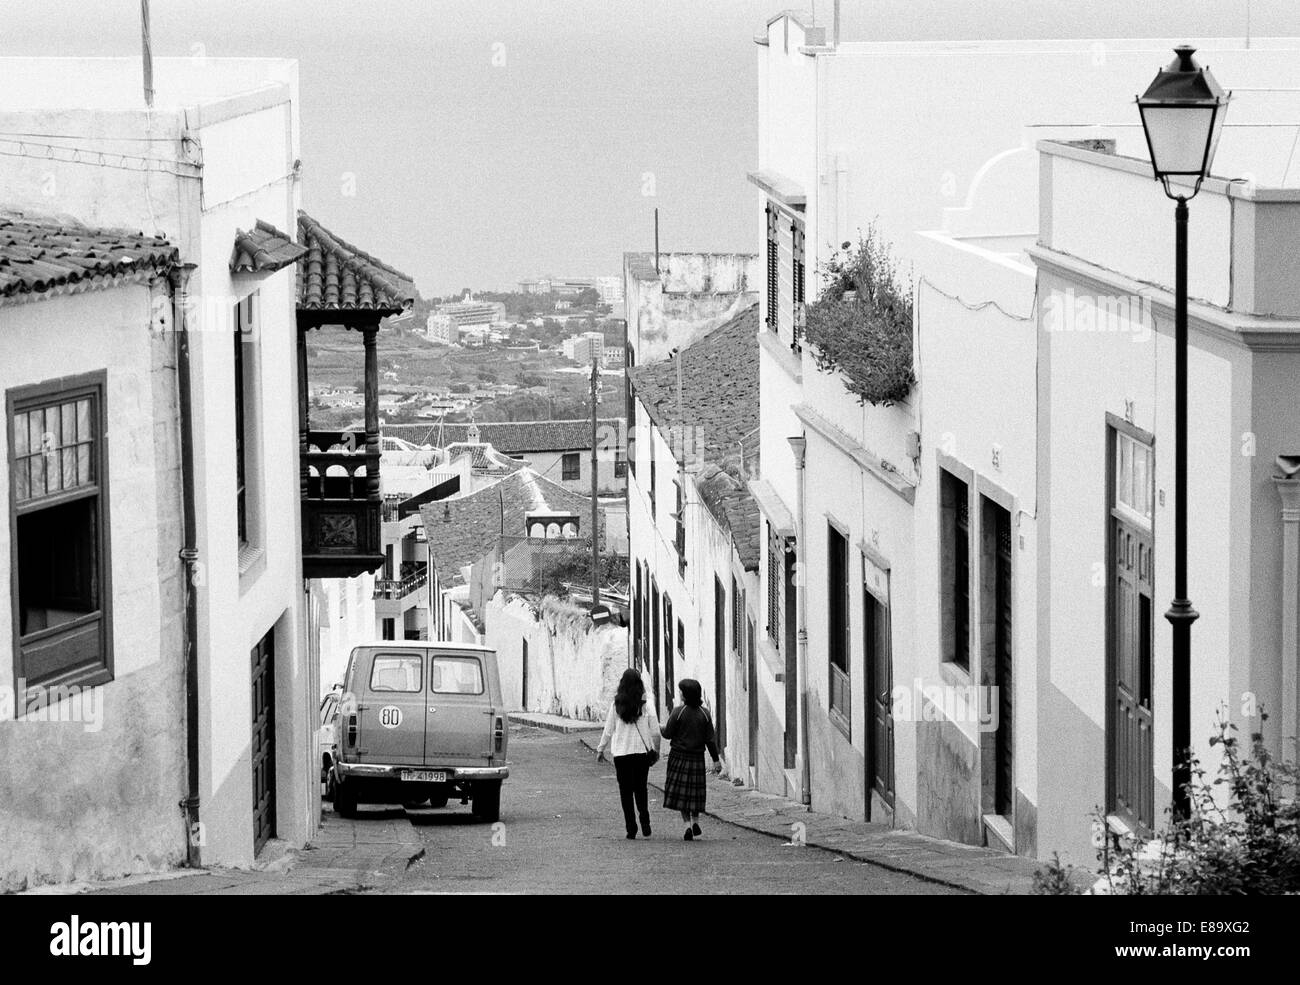 Eighties, Spain, Canary Islands, Canaries, Tenerife, E-La Orotava, old town, street, alley, residential buildings, - Stock Image